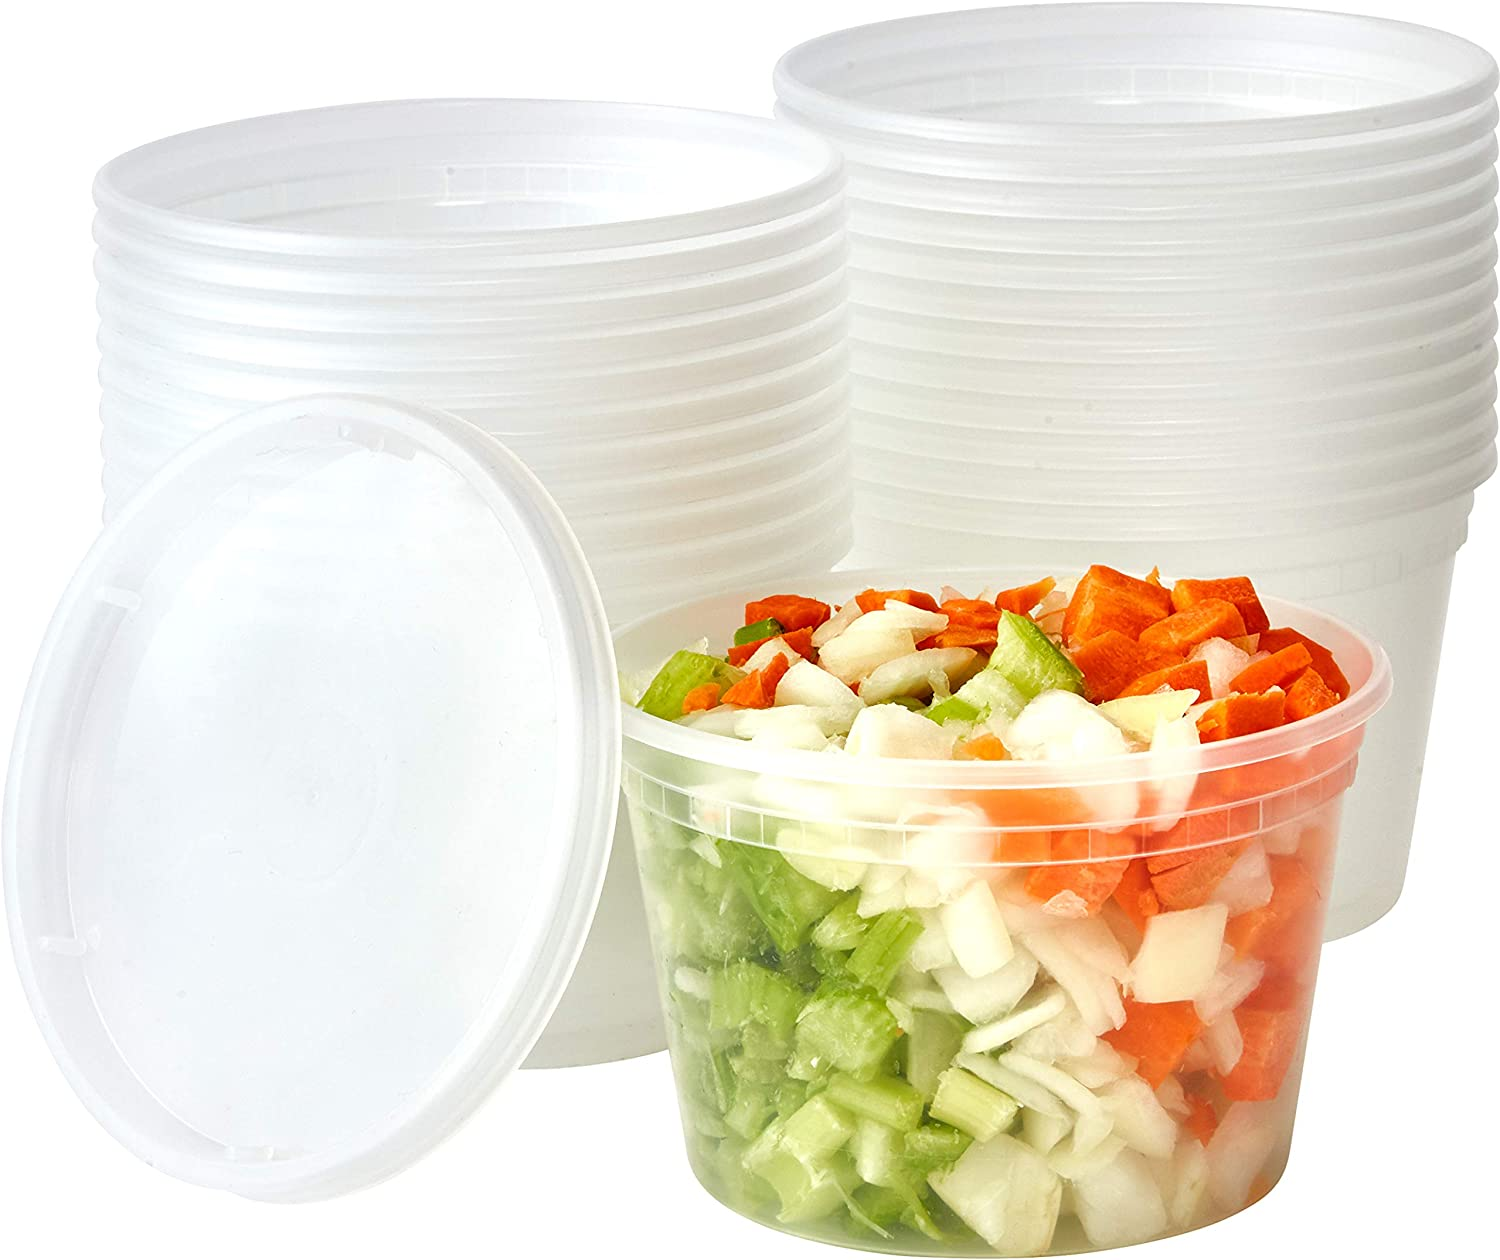 Deli Grade, BPA Free 16oz Plastic Containers with Lids, 24ct. Leakproof, Microwavable Portion Container for To-Go Orders, Food Prep and Storage. Reusable Takeout Cups for Restaurant, Cafe and Catering